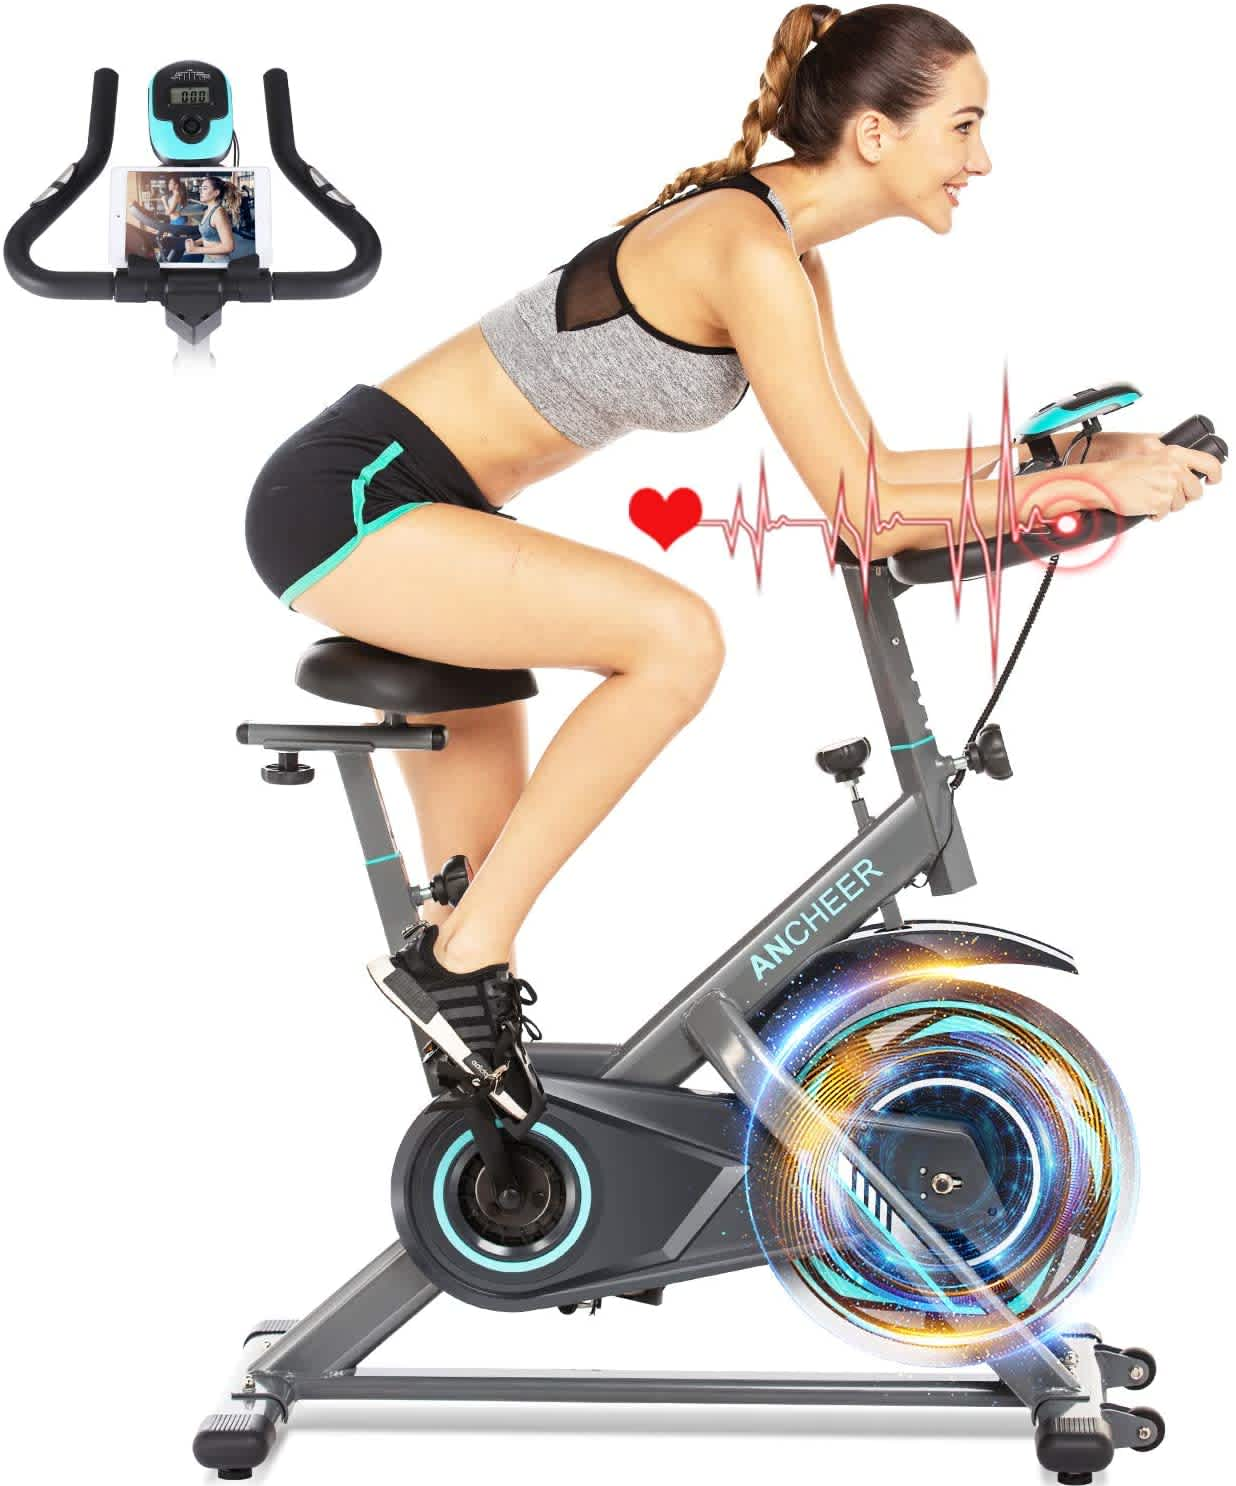 Ancheer Stationary Exercise Bike w/ HR Monitor & LCD Display